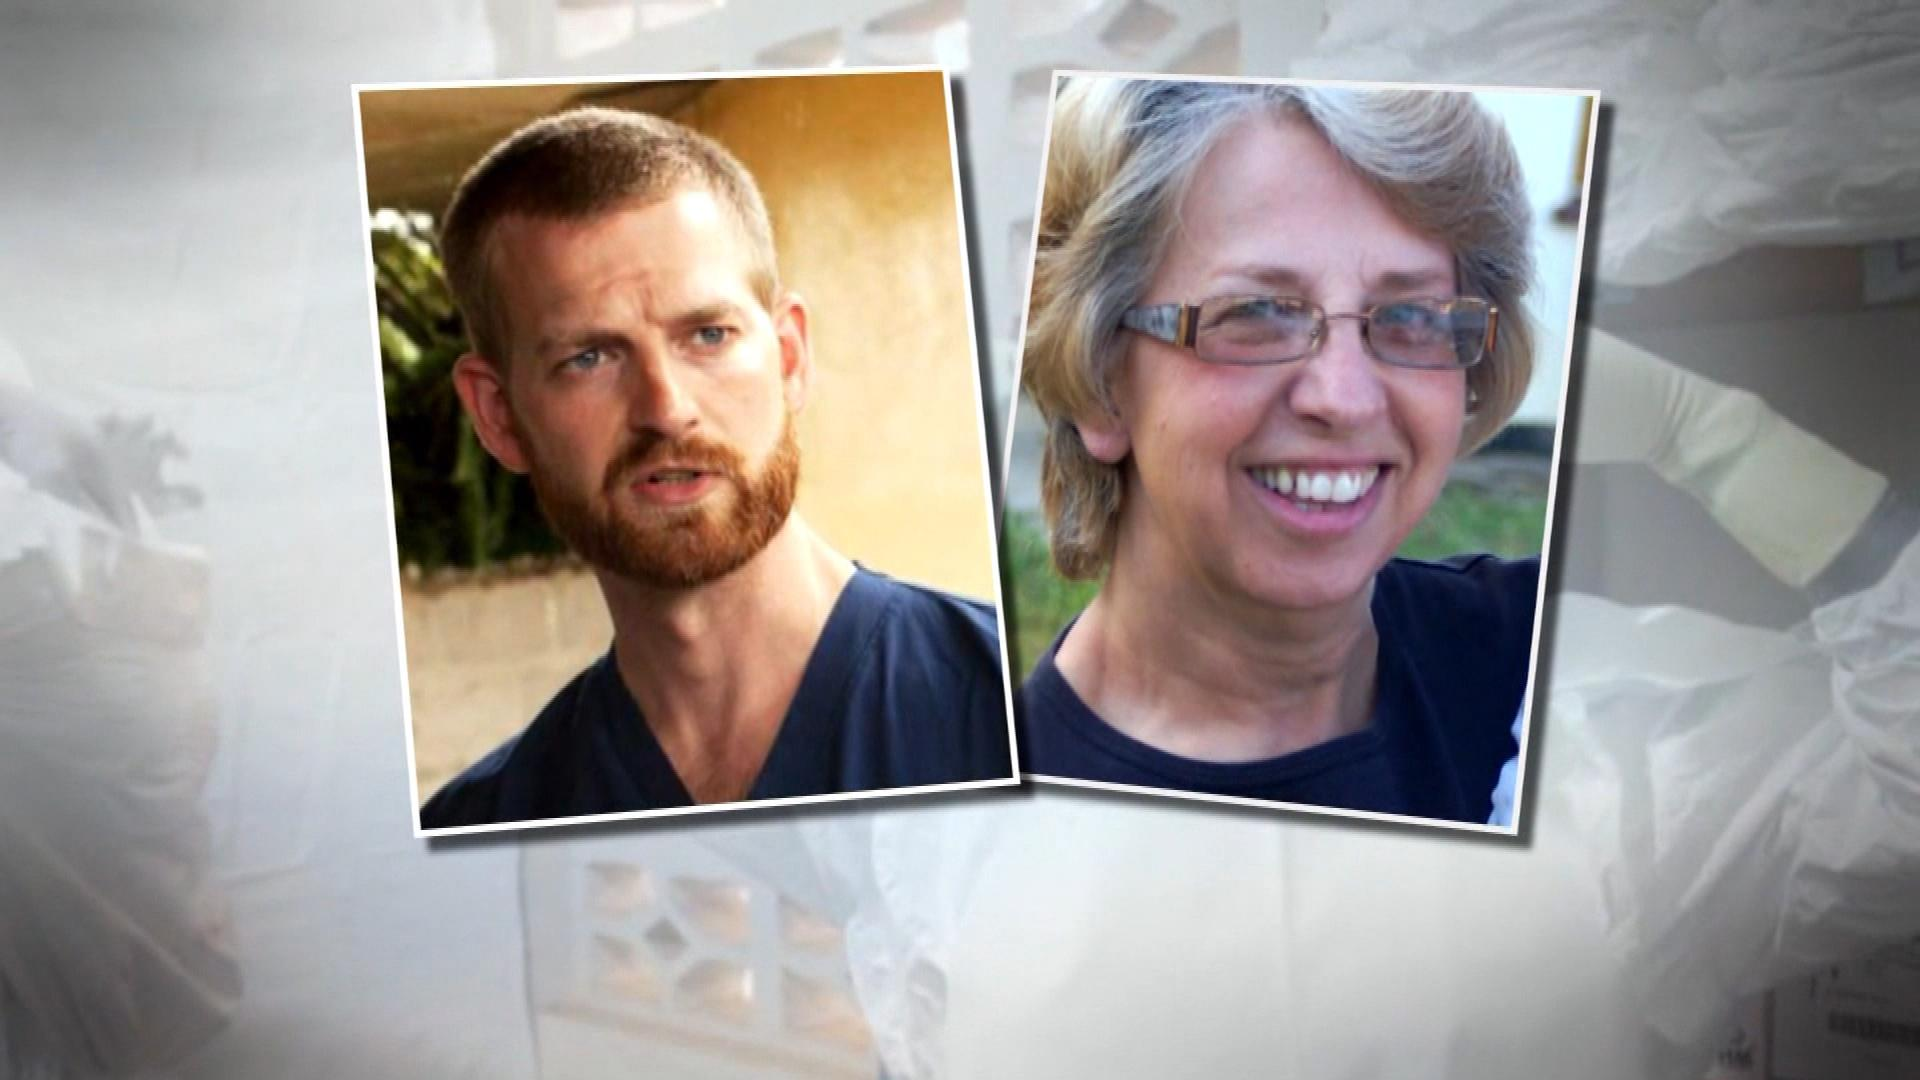 Dr. Kent Brantly and Nancy Writebol (credit: CBS)